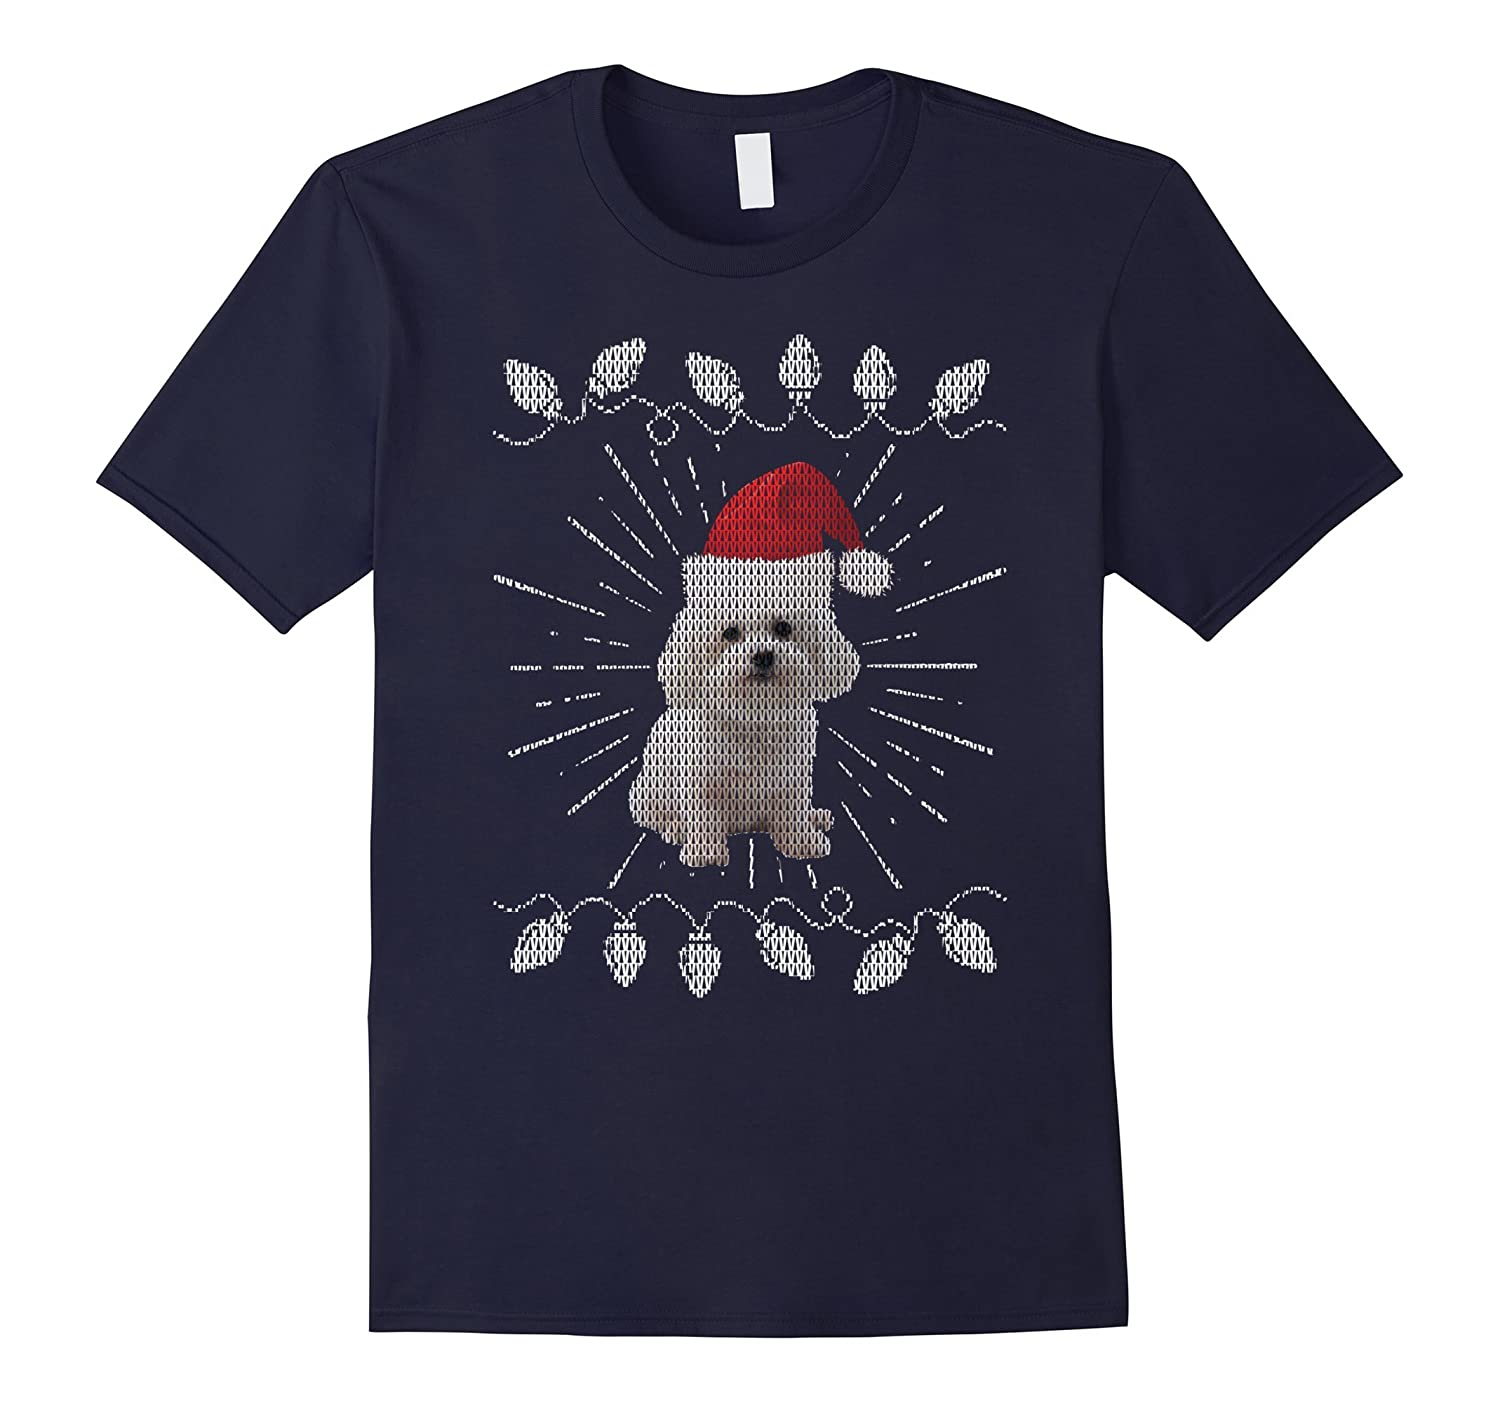 Bichon Frise Tshirt Ugly Christmas Sweater Gift Dogs Lovers-T-Shirt